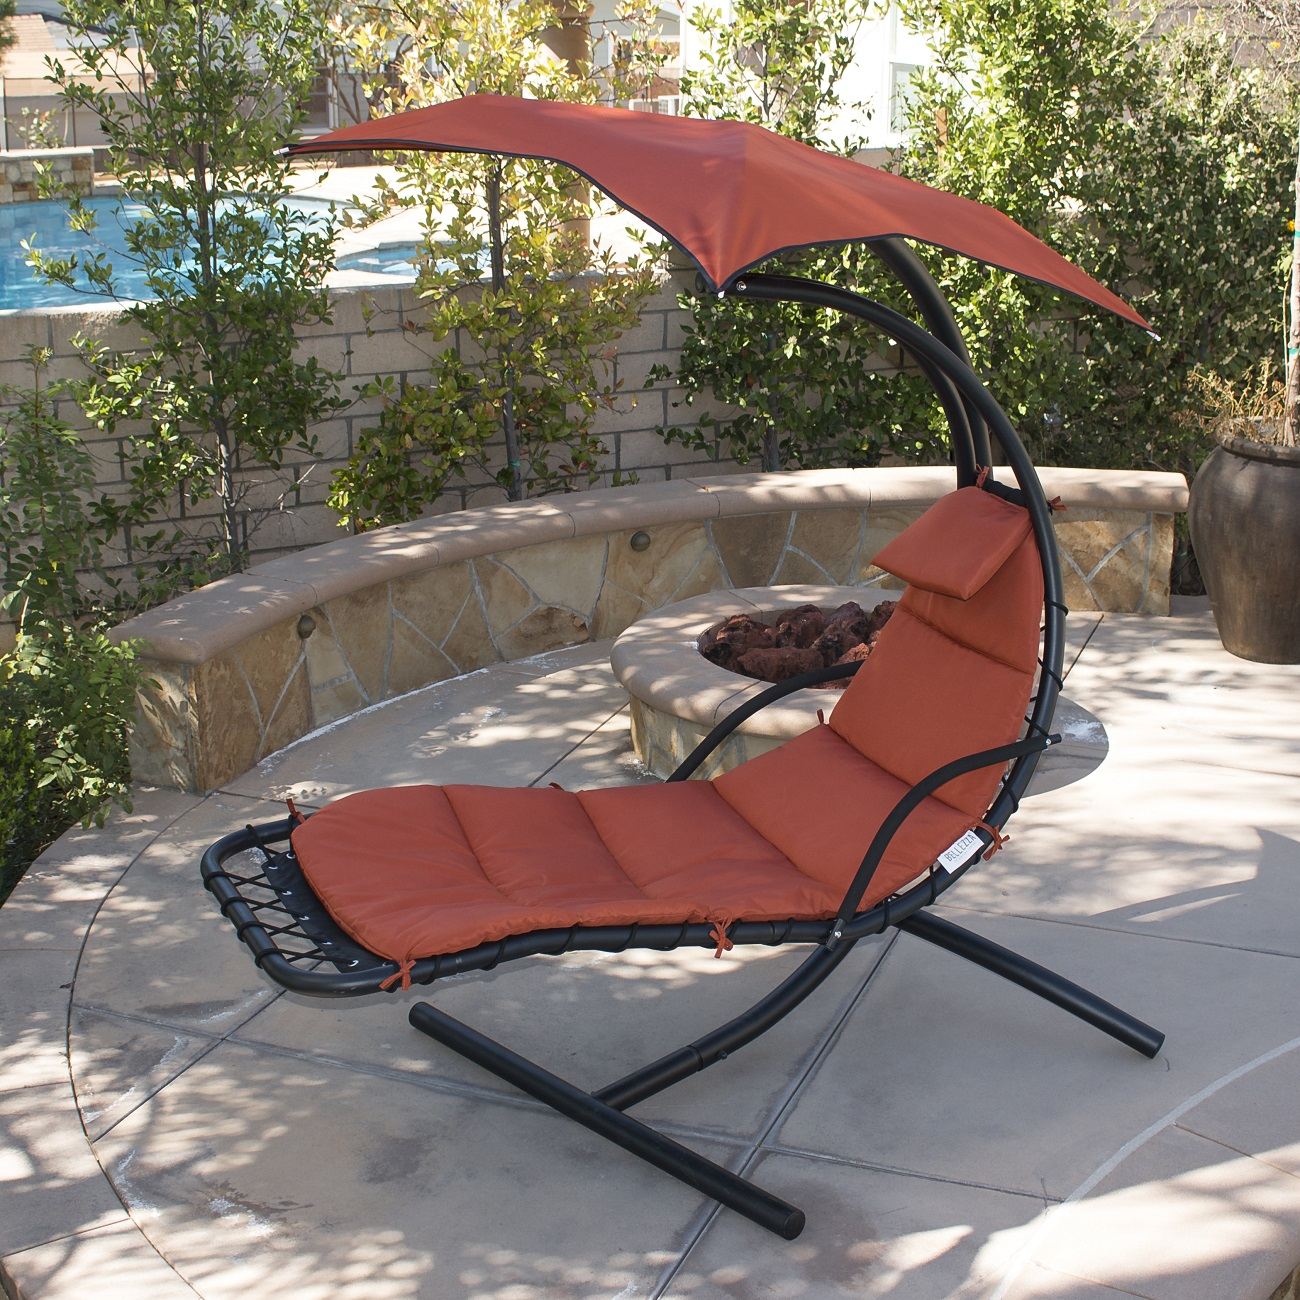 Hanging swinging lounge chair with umbrella